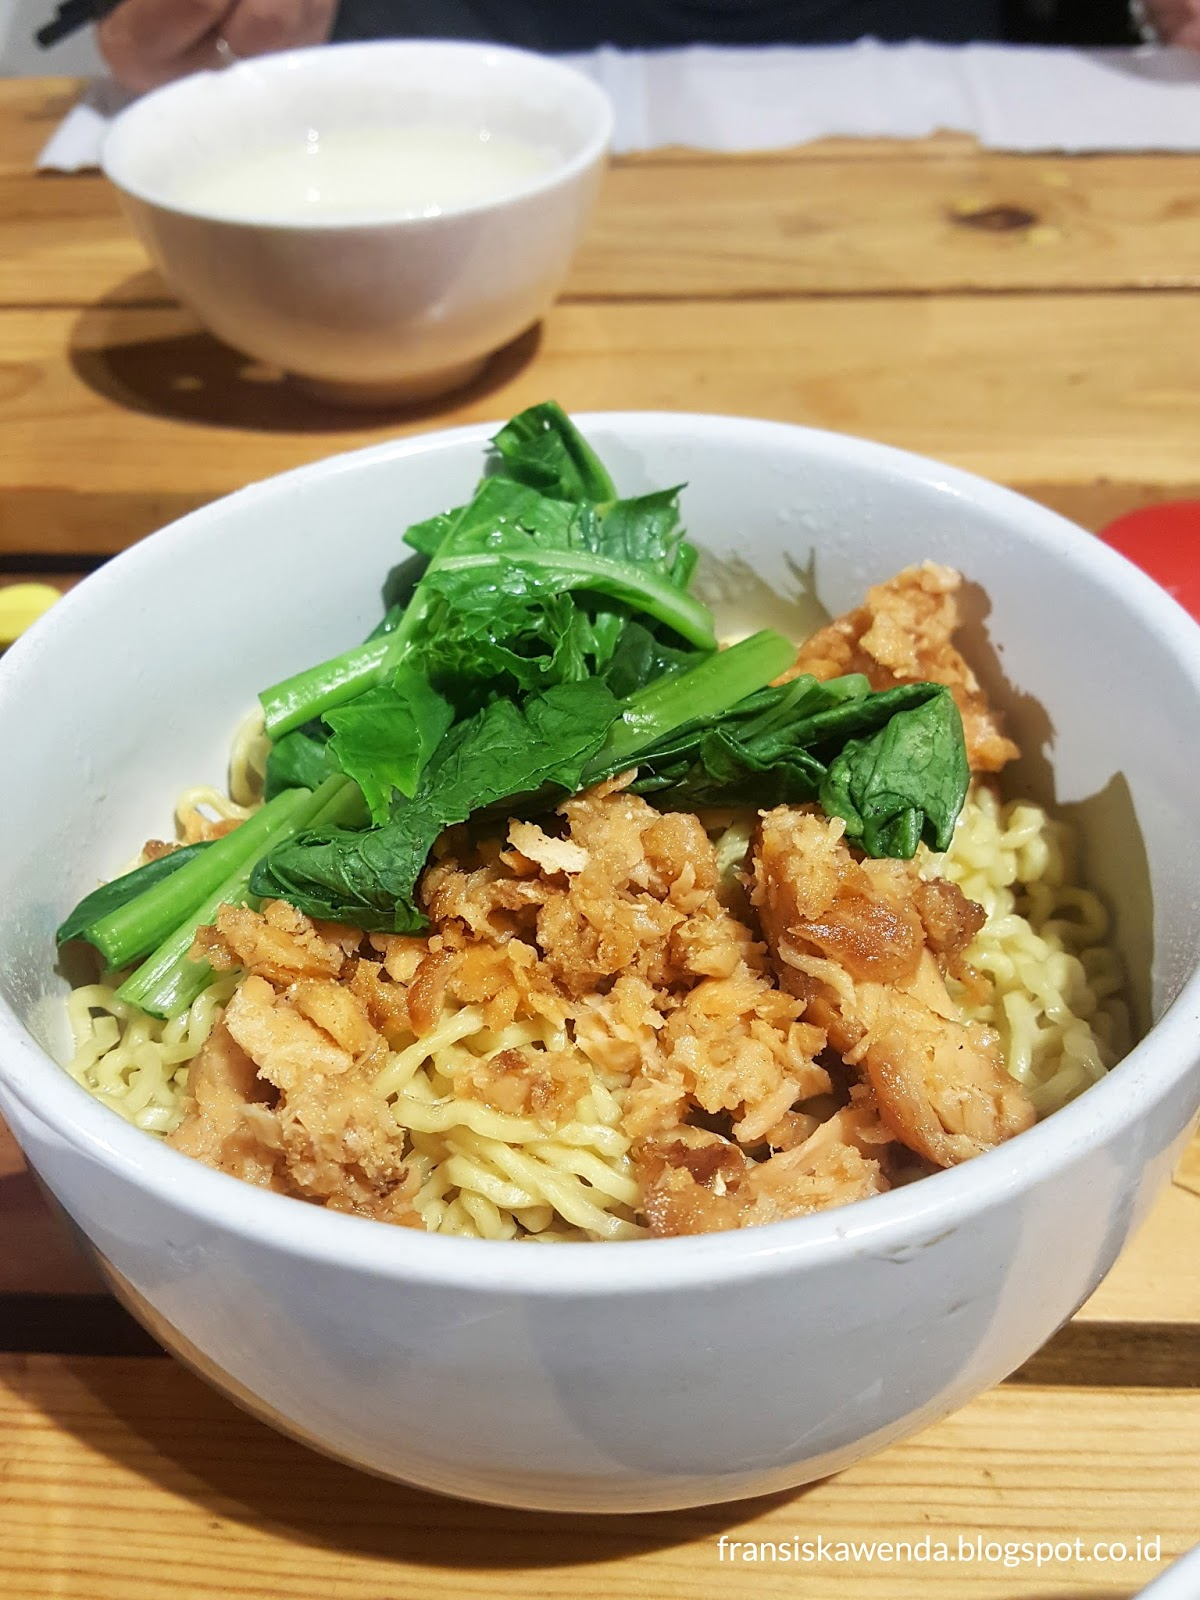 Ncek Legenda Noodle Bar Kelapa Gading Review Fransiska Wenda Blog Sabun Natural Scrub 110gr Orchid Curly With Smoked Salmon Idr 29000 It Served Chicken Broath Soup For The Topping Saltiness Is Fit To My Taste